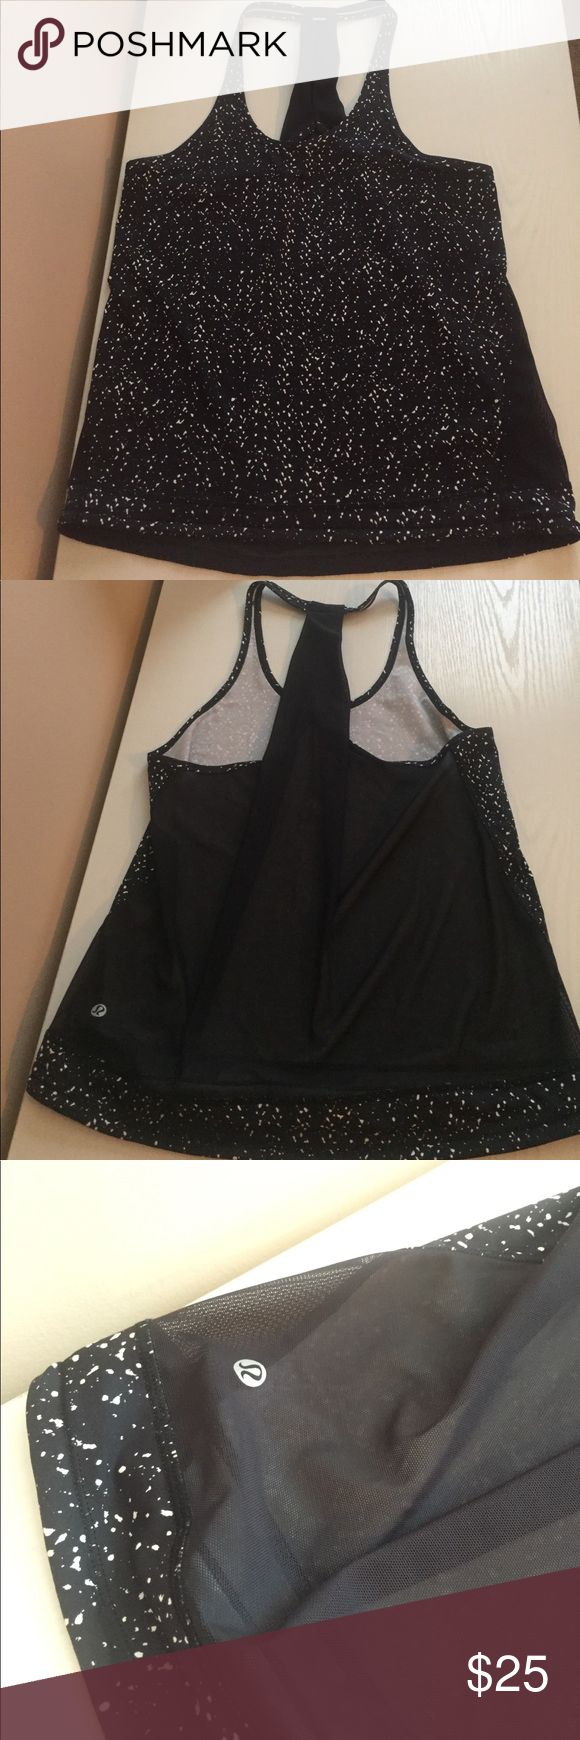 Lululemon Mesh-back Tank Lululemon black and white speckled mesh-back tank top! Size 4/6. This top is SO CUTE! I really wish it fit me because the mesh back is so pretty. Re-poshing because it's a little to big for me. I wear a 4 in lulu sports bras and a 2/4 in tops depending. This top has a string to tighten the bottom if it's too wide. lululemon athletica Tops Tank Tops